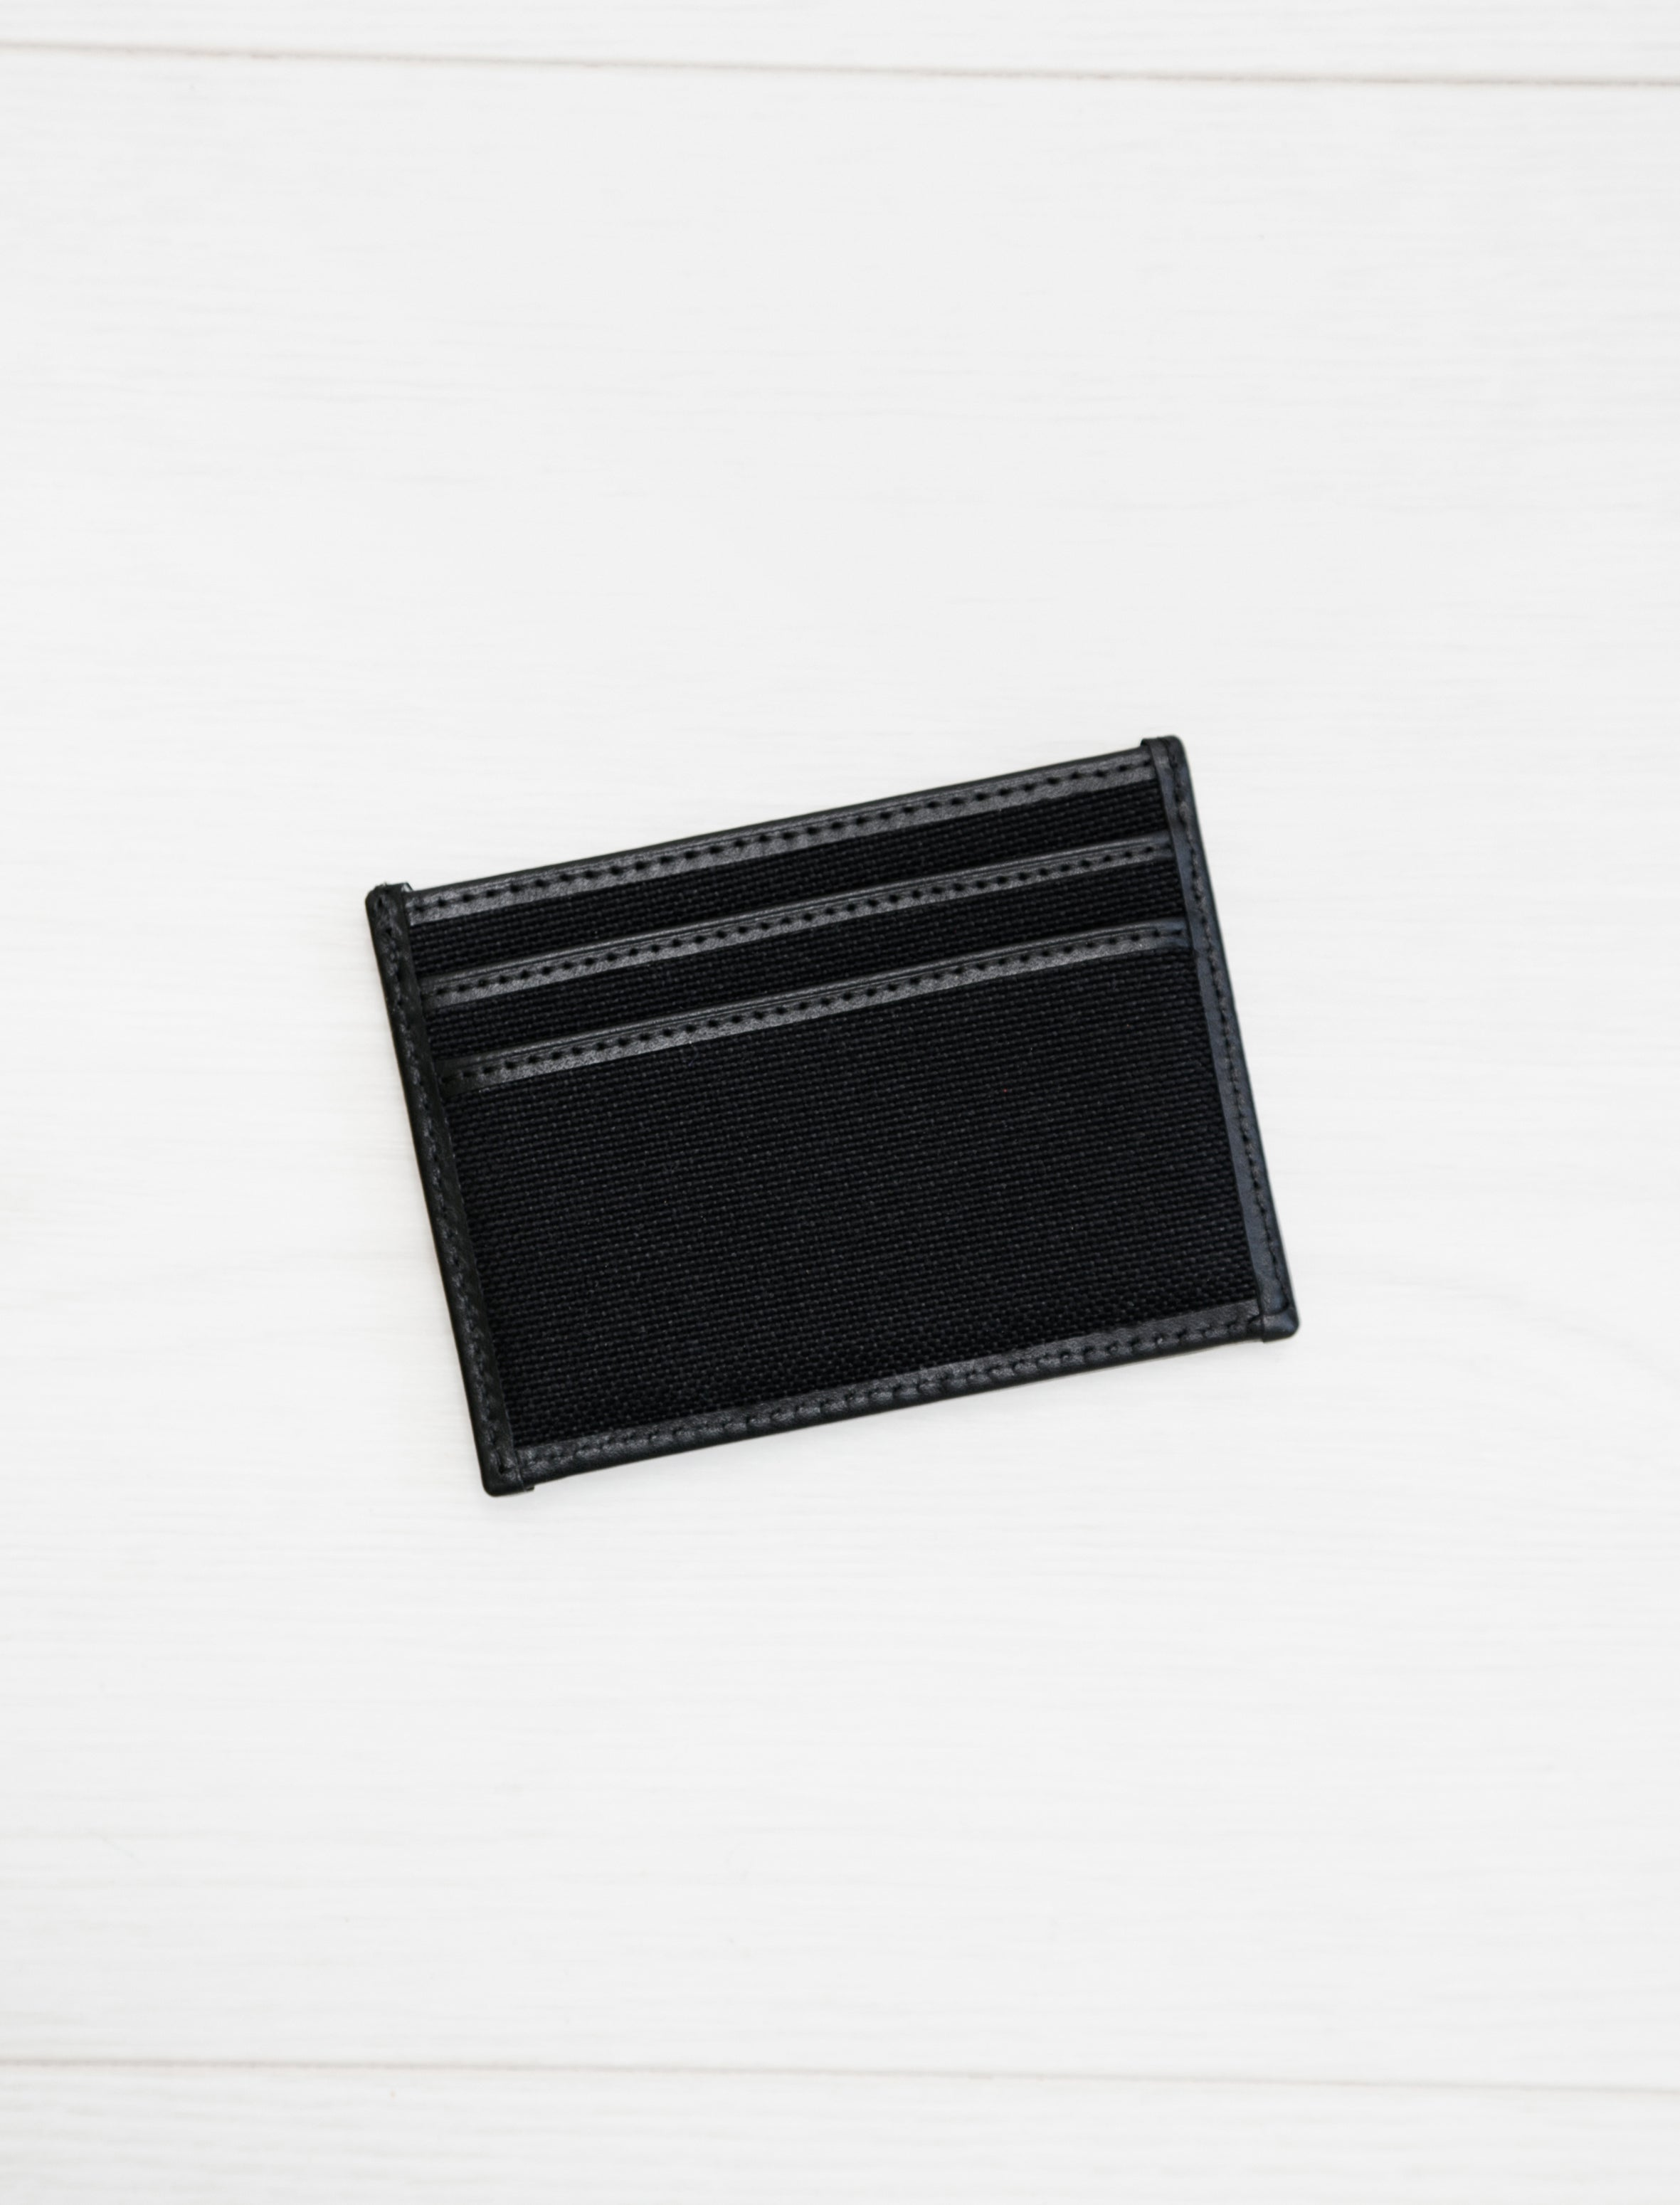 MS Cardholder Black